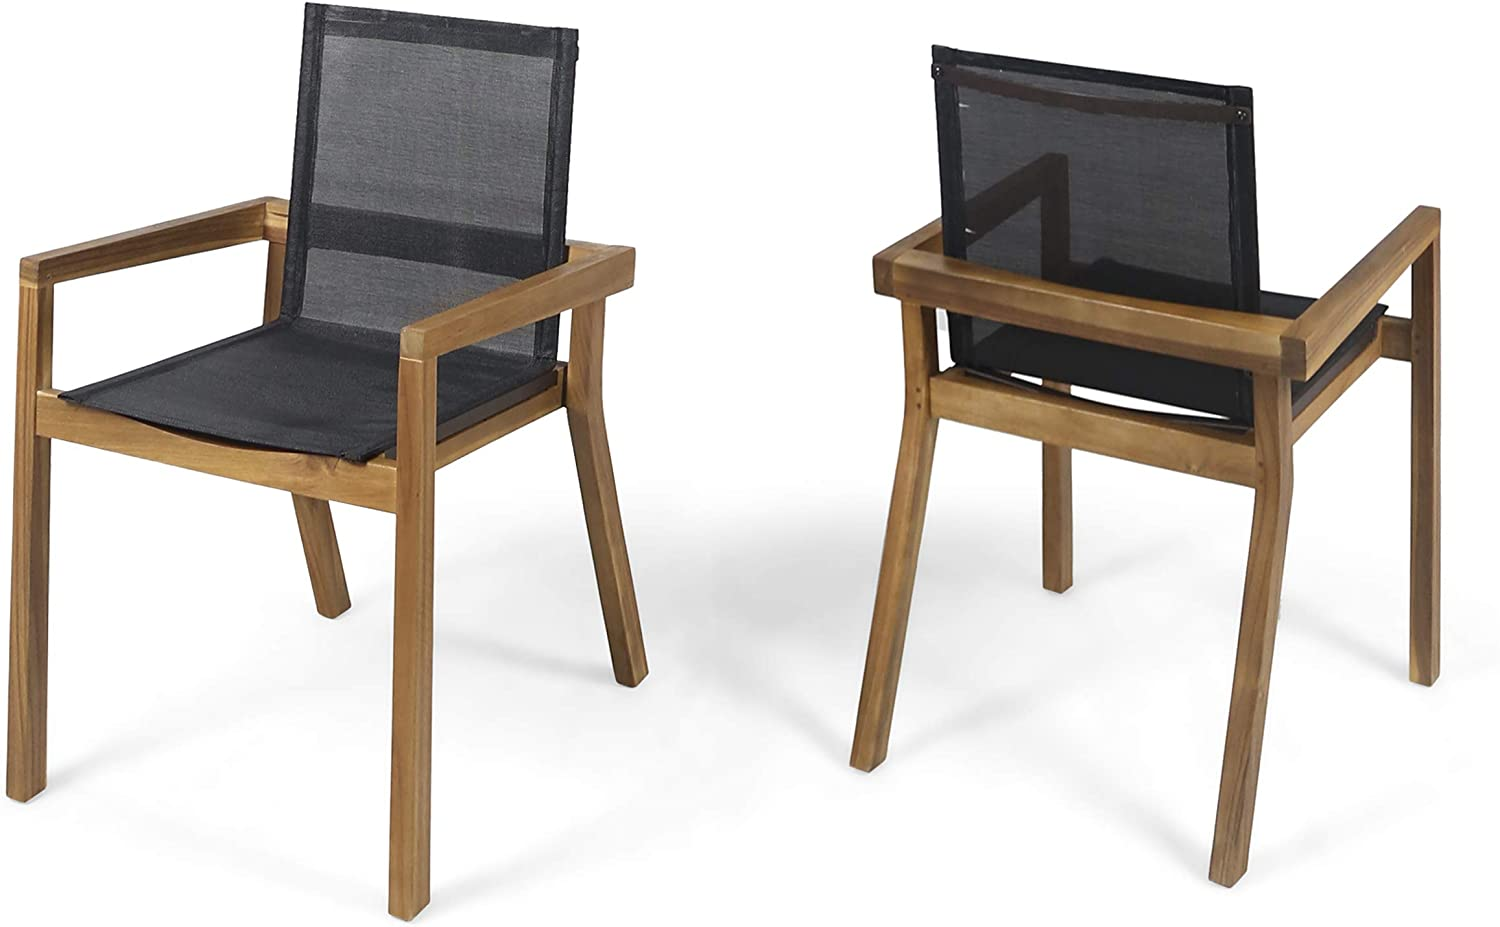 Great Deal Furniture Jimmy Outdoor Acacia Wood and Mesh Dining Chairs (Set of 2), Teak